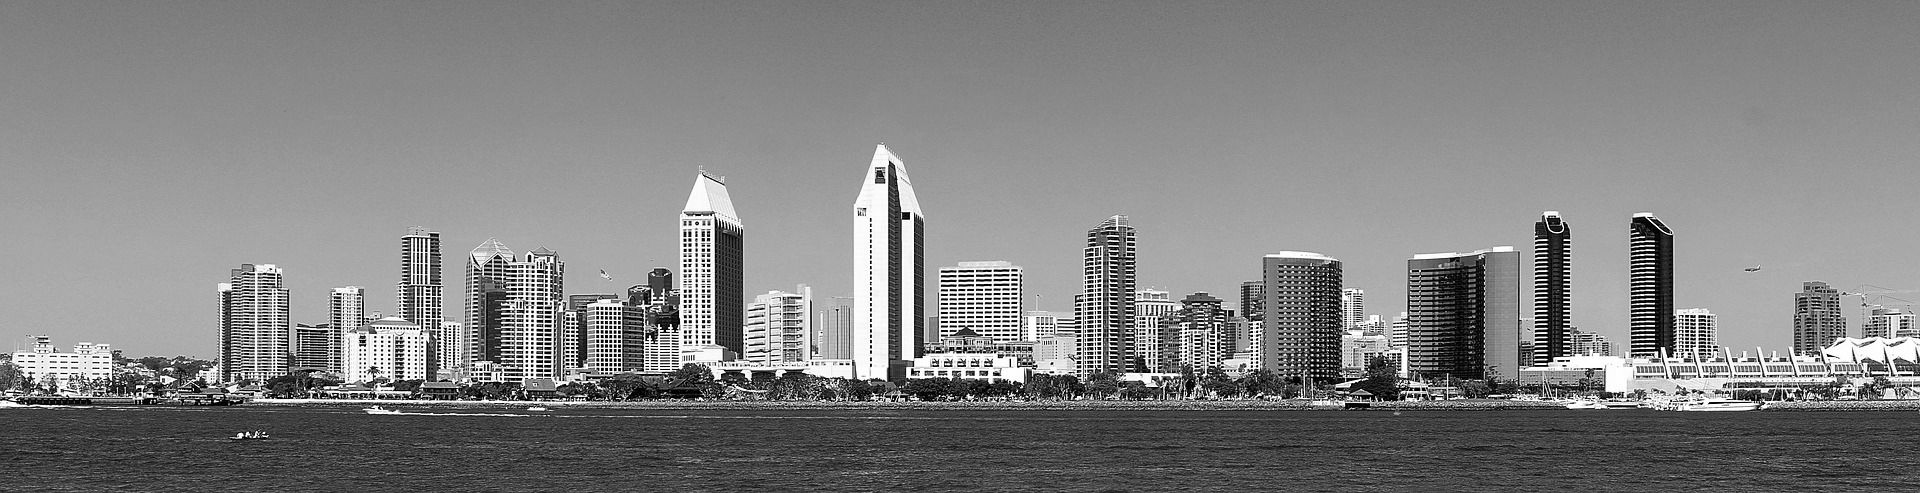 San Diego Location Banner Bw The Ledger Law Firm